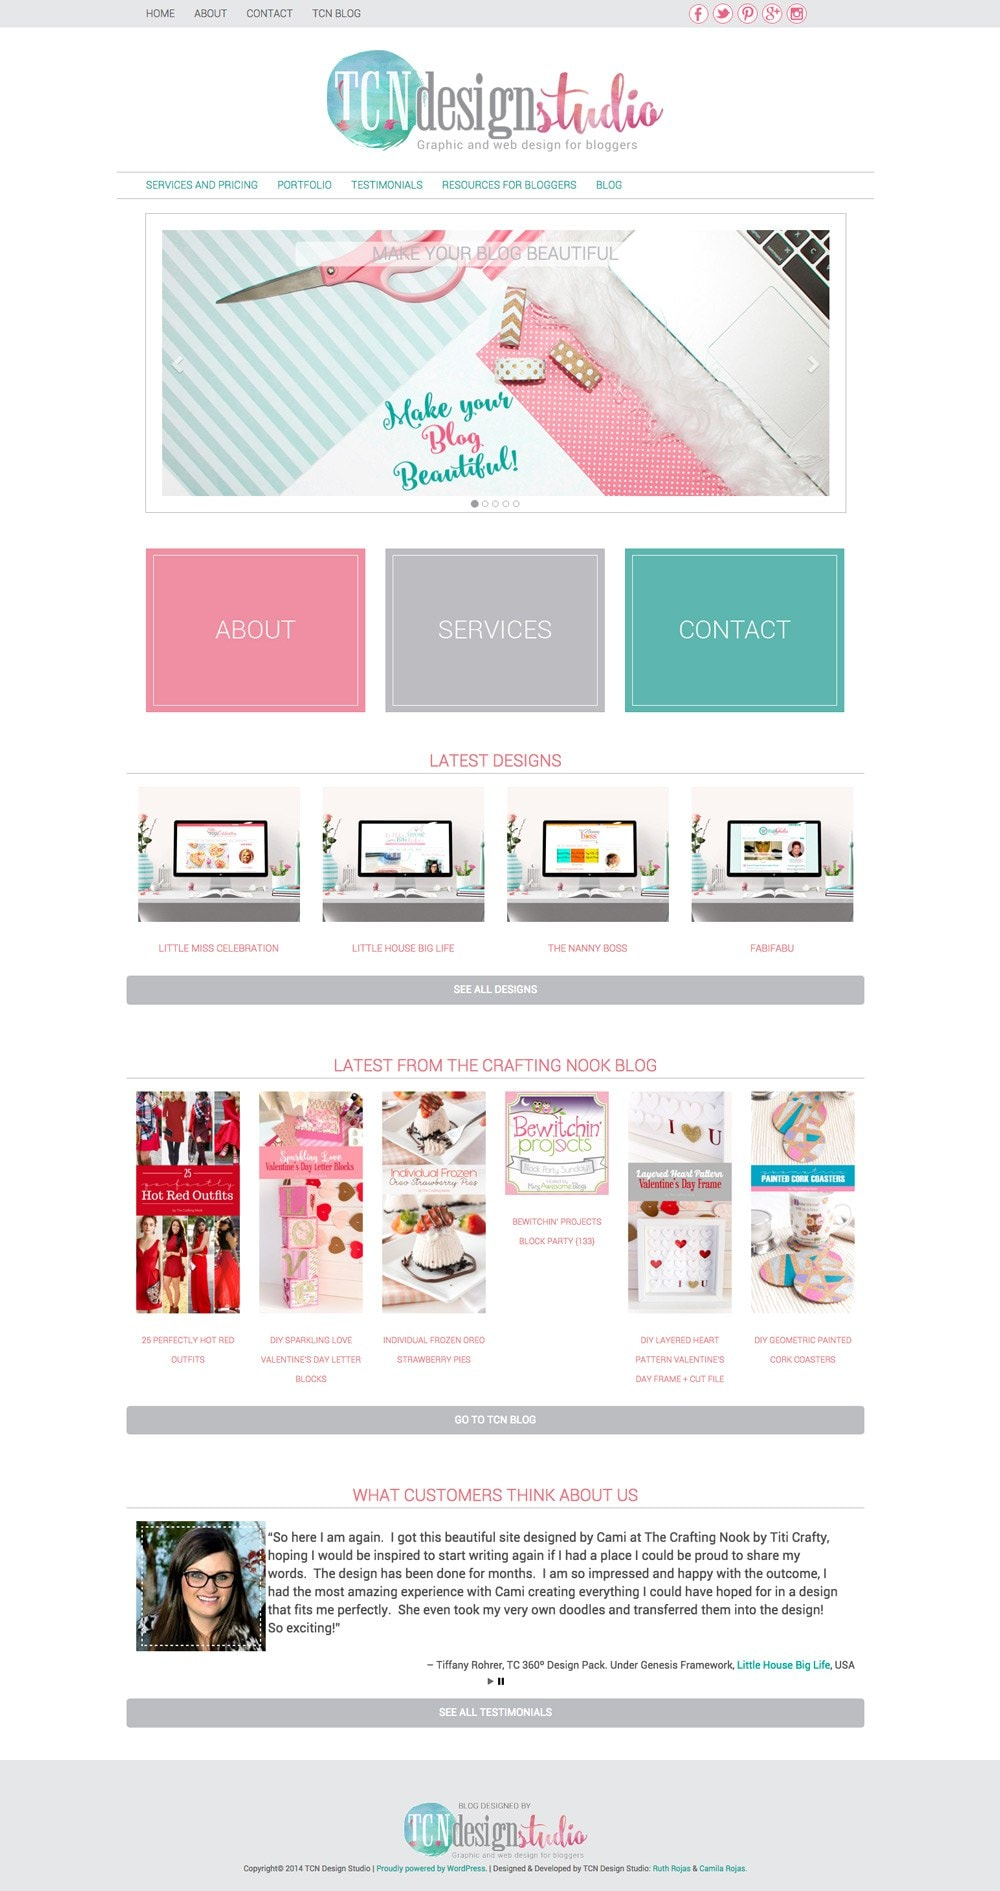 TCNDS-English-Cute-Blog-Design